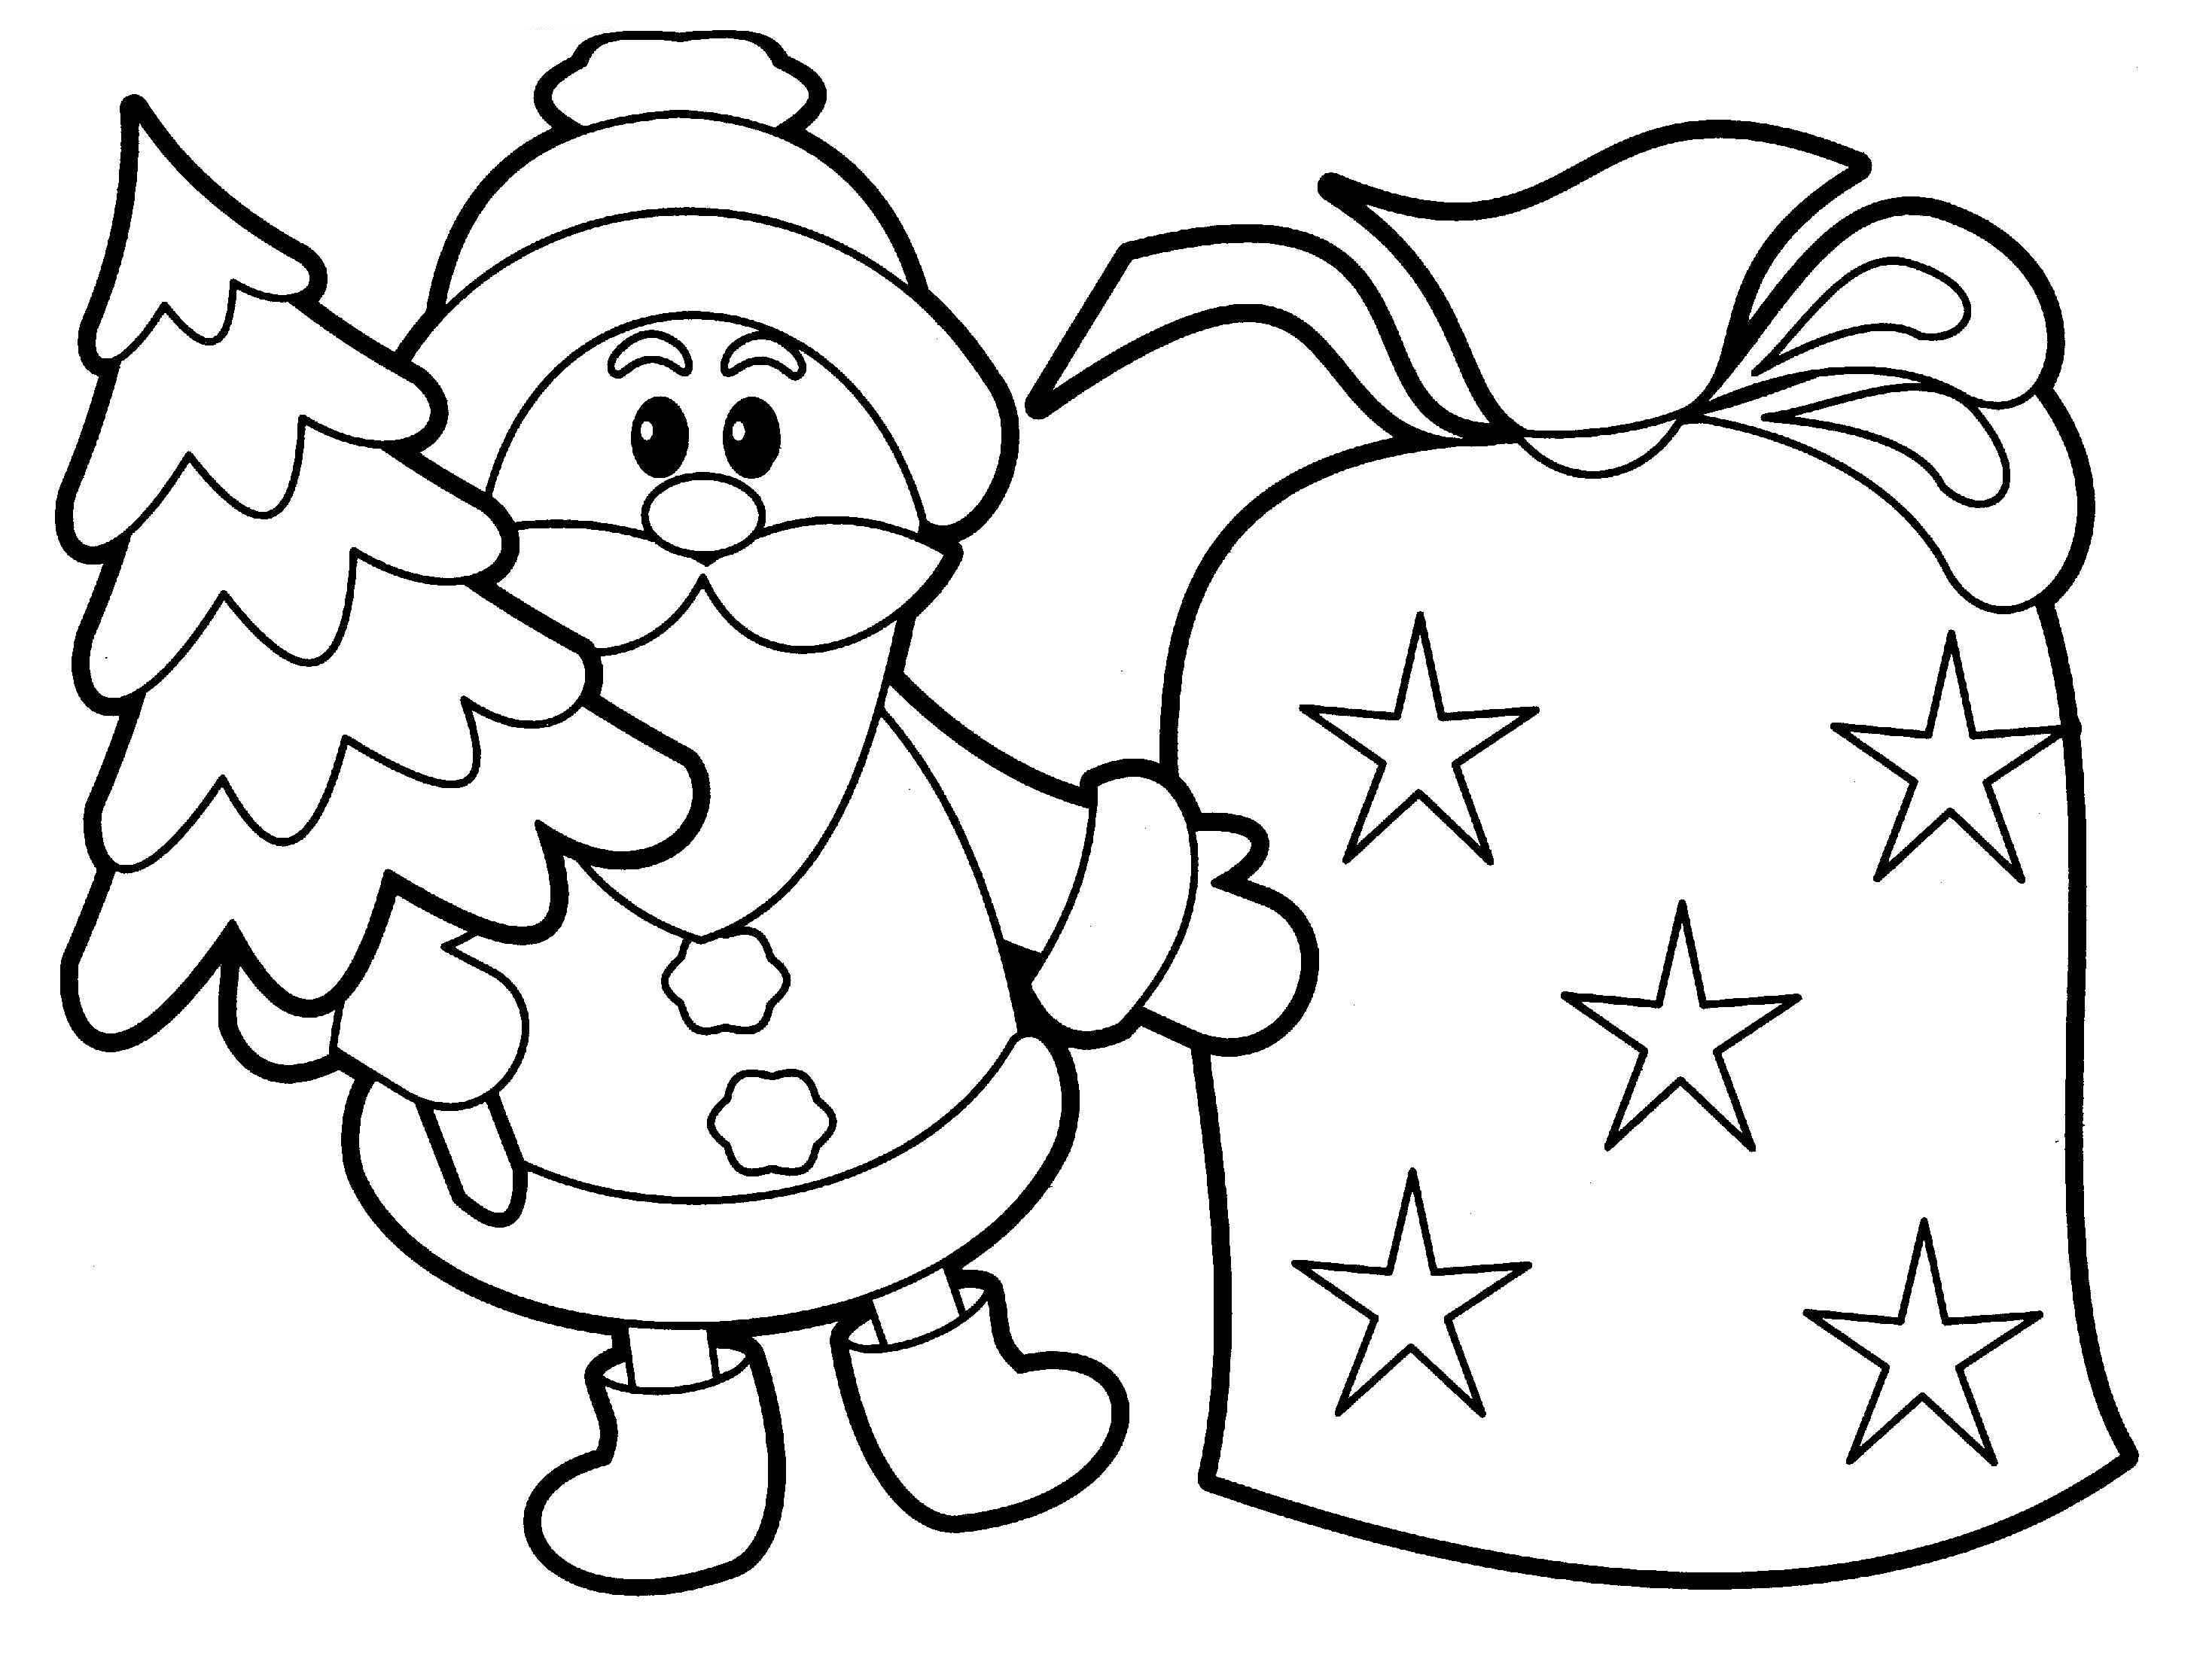 Merry Christmas Coloring Pages Printable  Christmas tree Coloring